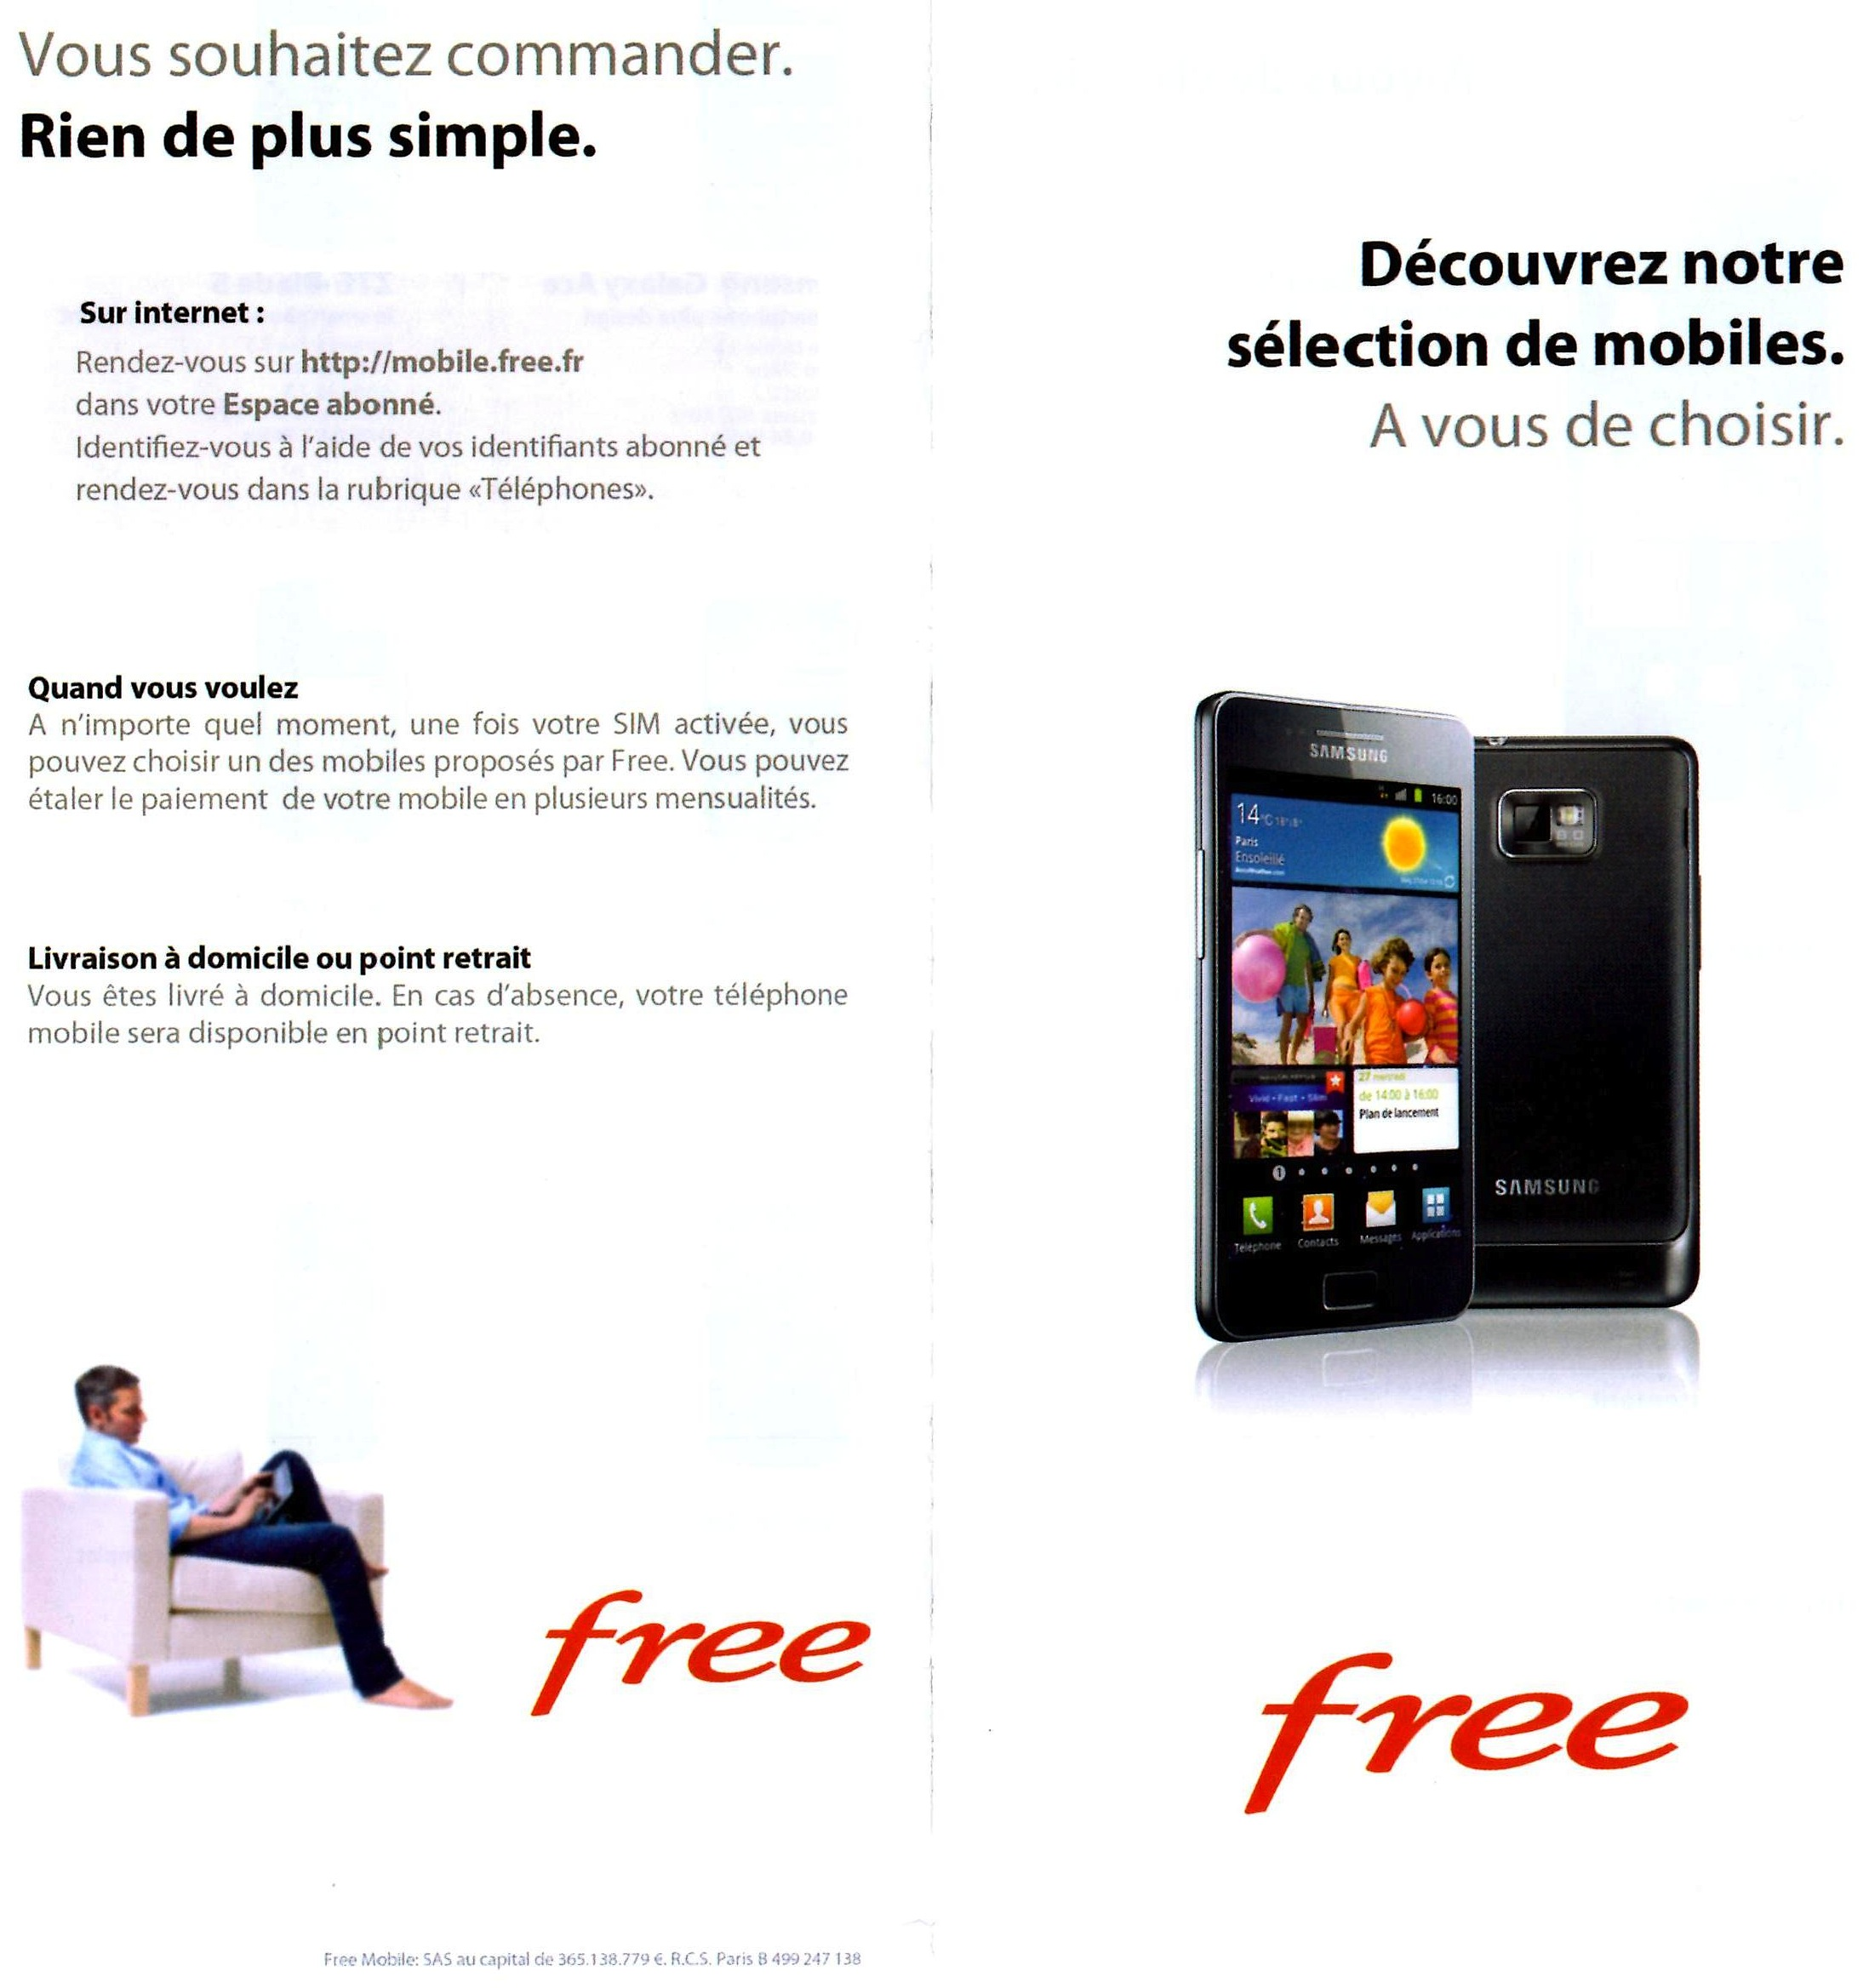 free mobile une brochure pour les mobiles jointe avec la carte sim. Black Bedroom Furniture Sets. Home Design Ideas